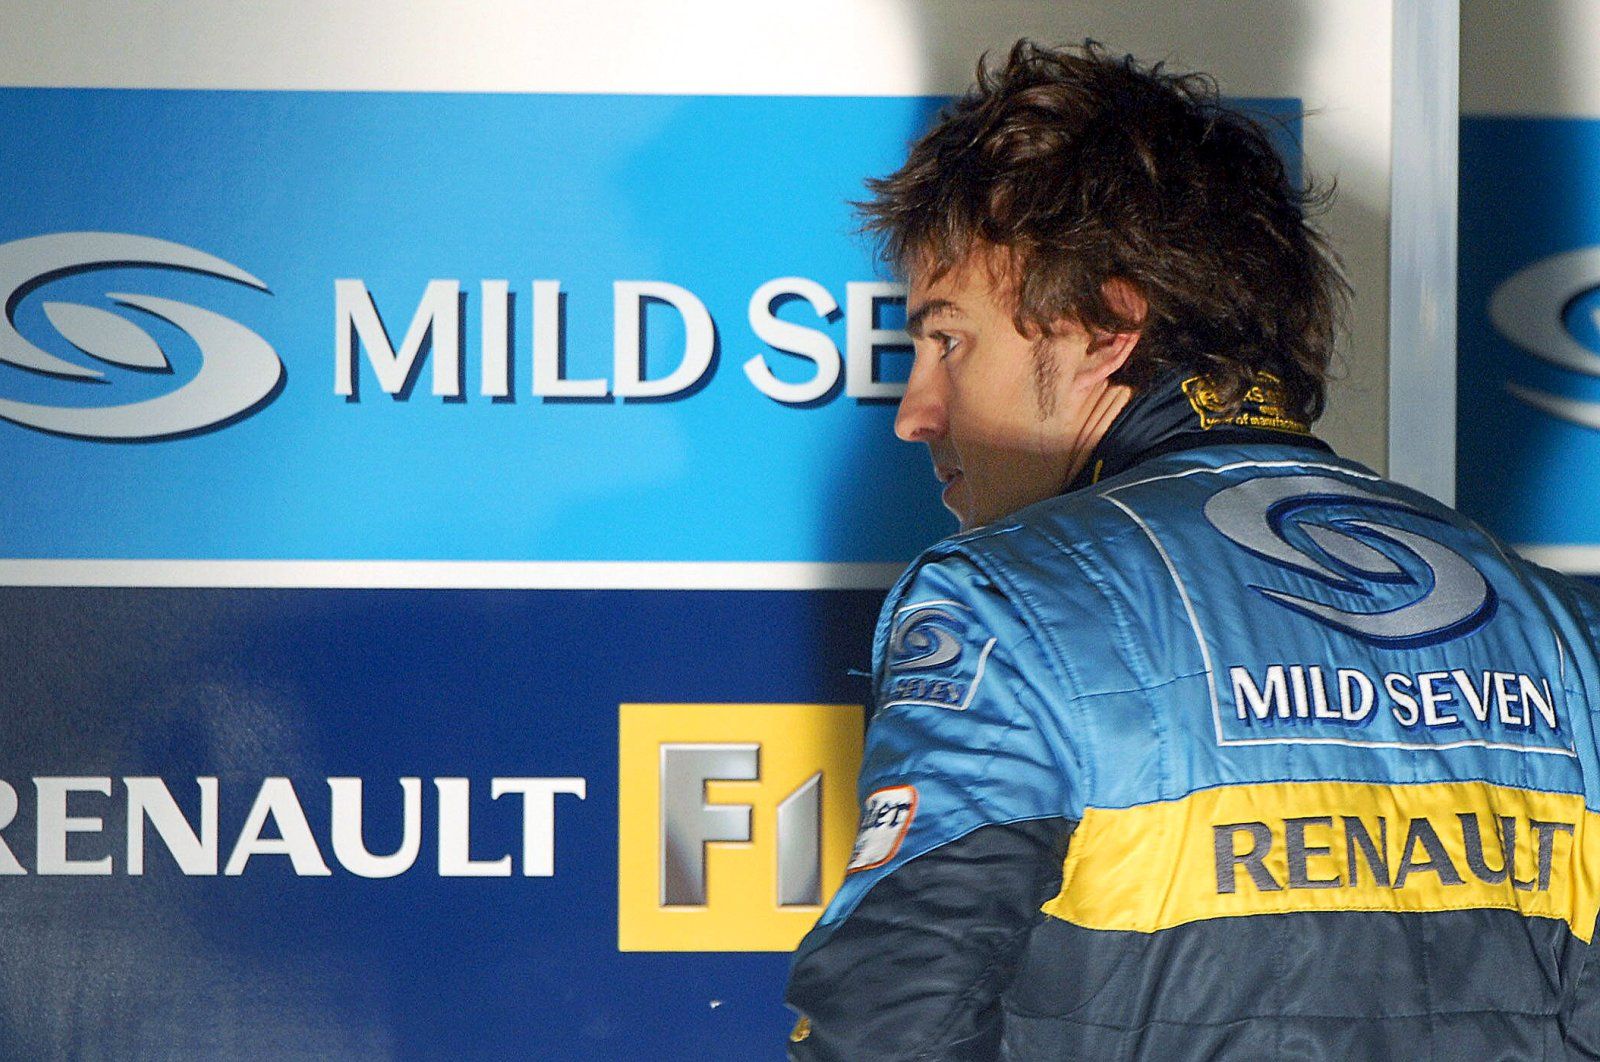 Fernando Alonso during an F1 free training session in Cadiz, Spain, July 21, 2006. (EPA Photo)